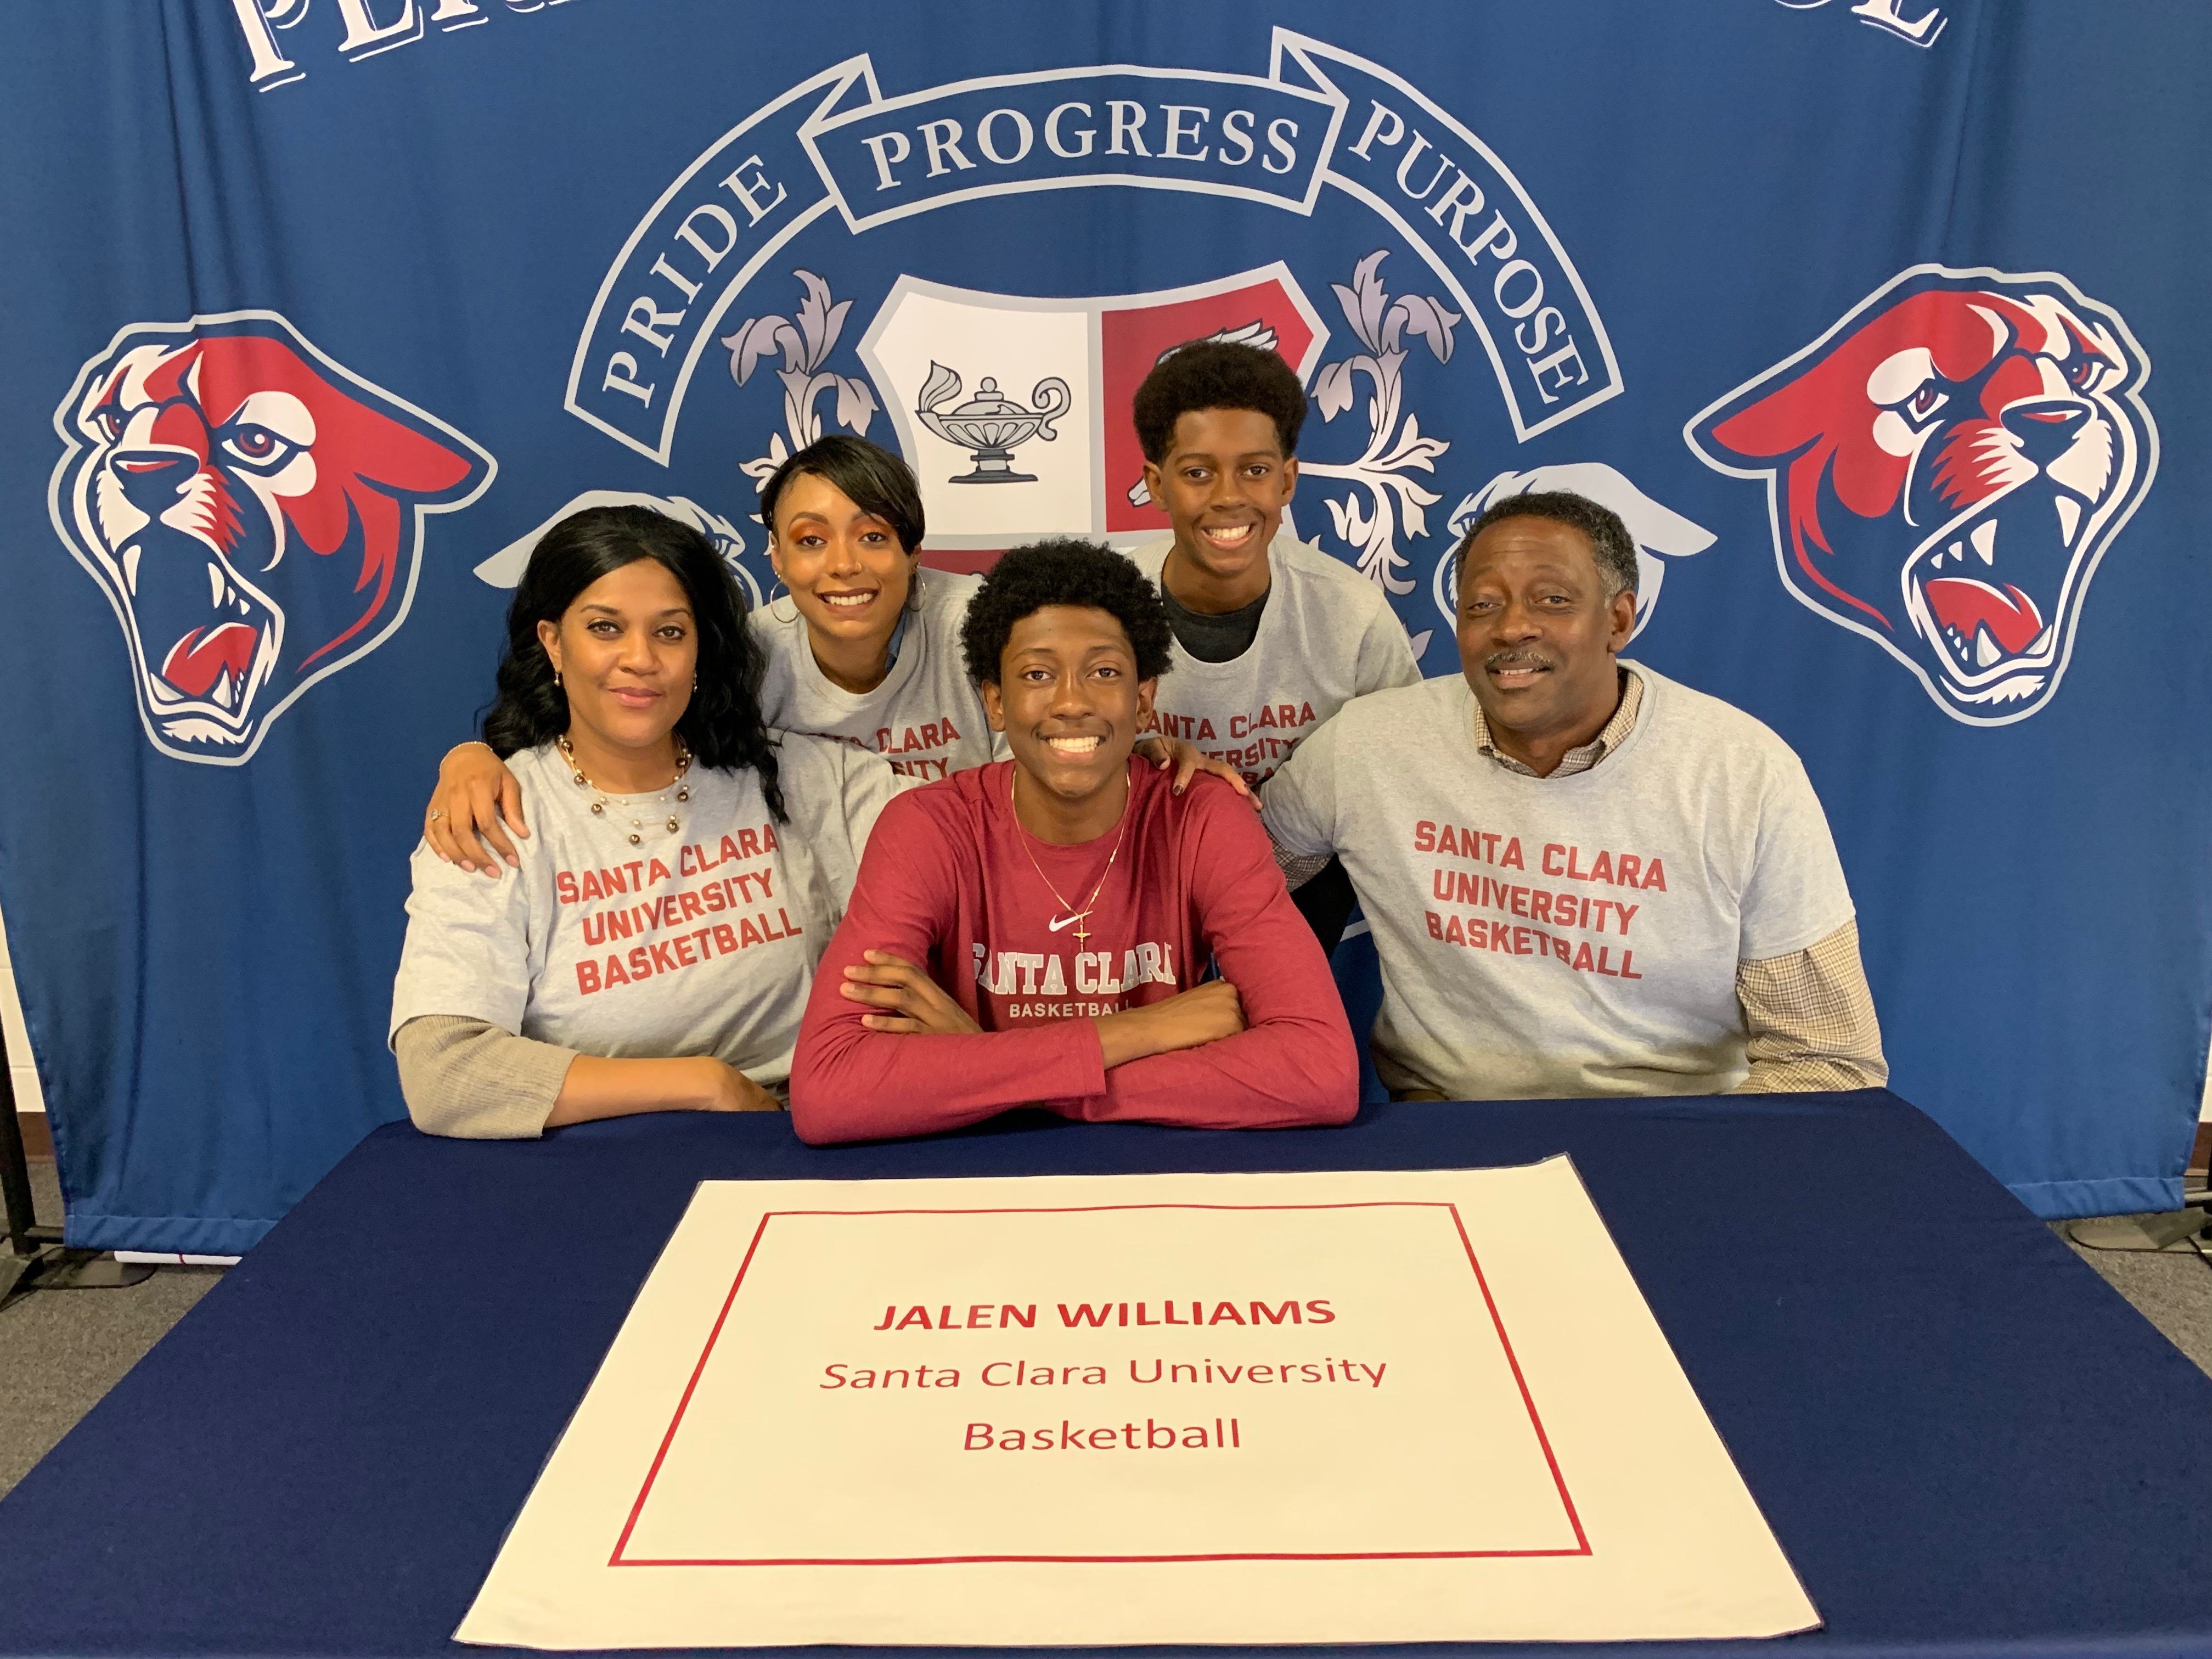 Perry basketball player Jalen Williams poses with his family after signing with Santa Clara on Nov. 14, 2018.